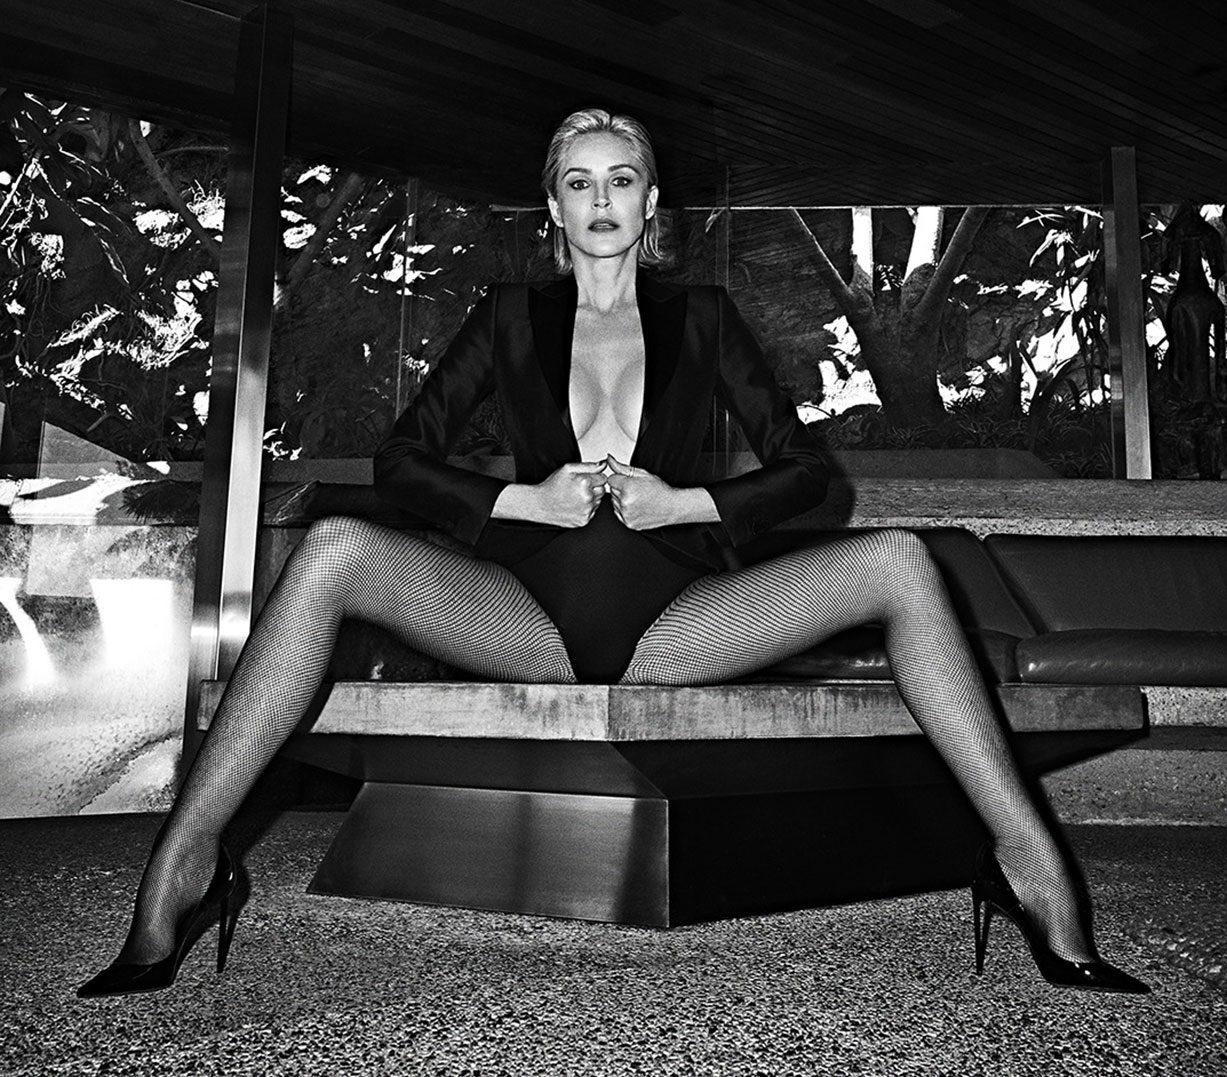 Sharon Stone by Branislav Simoncik / Vogue Portugal may 2019